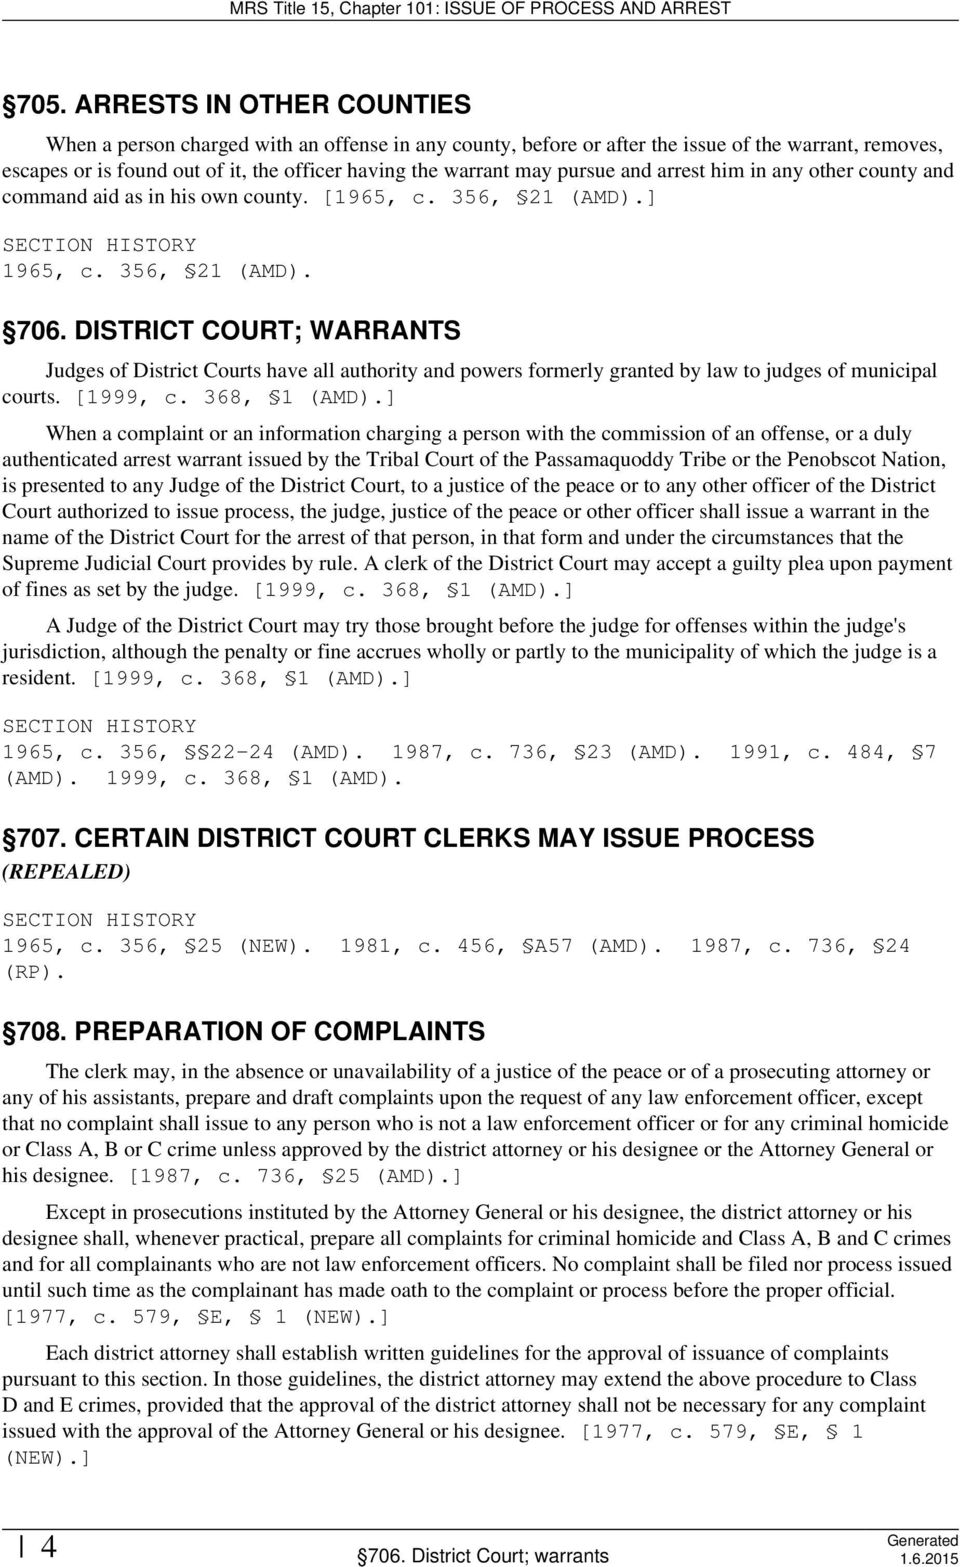 DISTRICT COURT; WARRANTS Judges of District Courts have all authority and powers formerly granted by law to judges of municipal courts. [1999, c. 368, 1 (AMD).